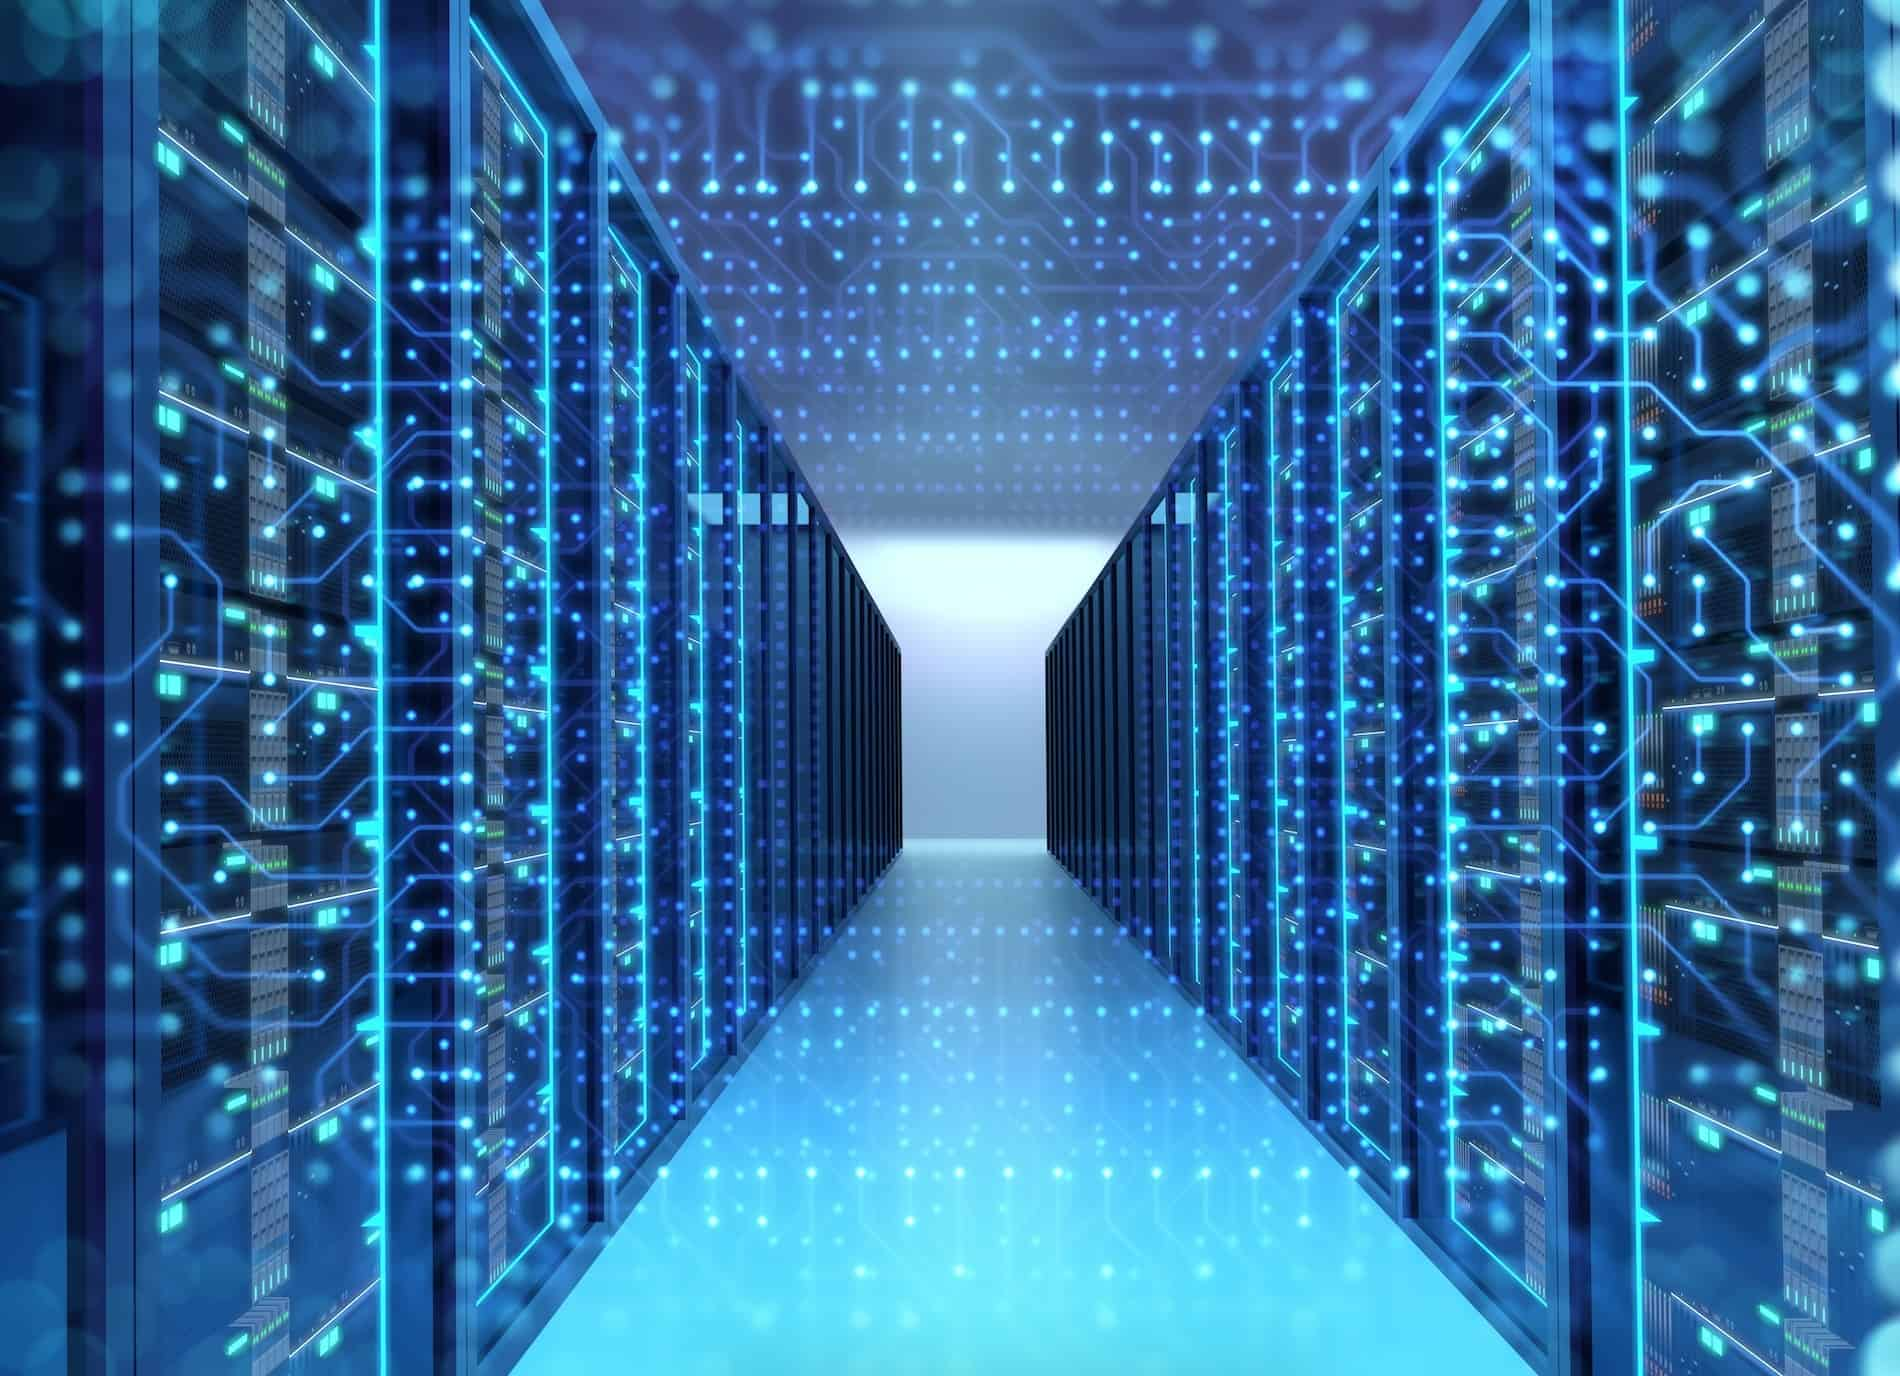 Pictured: an artist's rendering of the insider of a data center with transparent server racks extending into the background. It symbolizes the concept of a hyperscale data center.